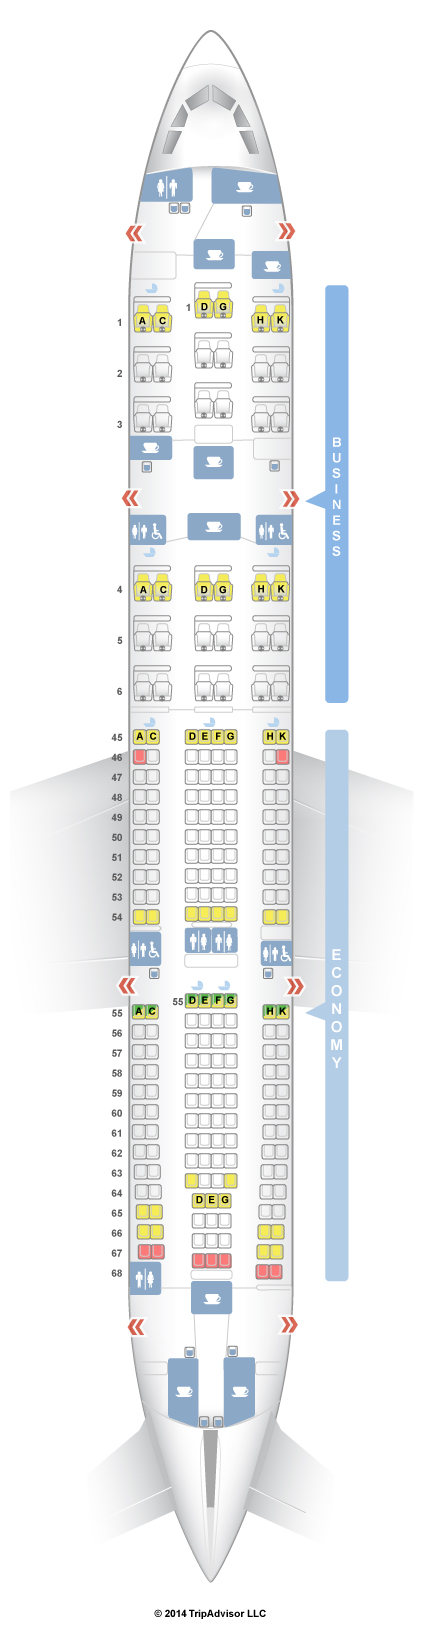 TG Stand-by Upgrading surcharge/ Fee from Economy to Business Class